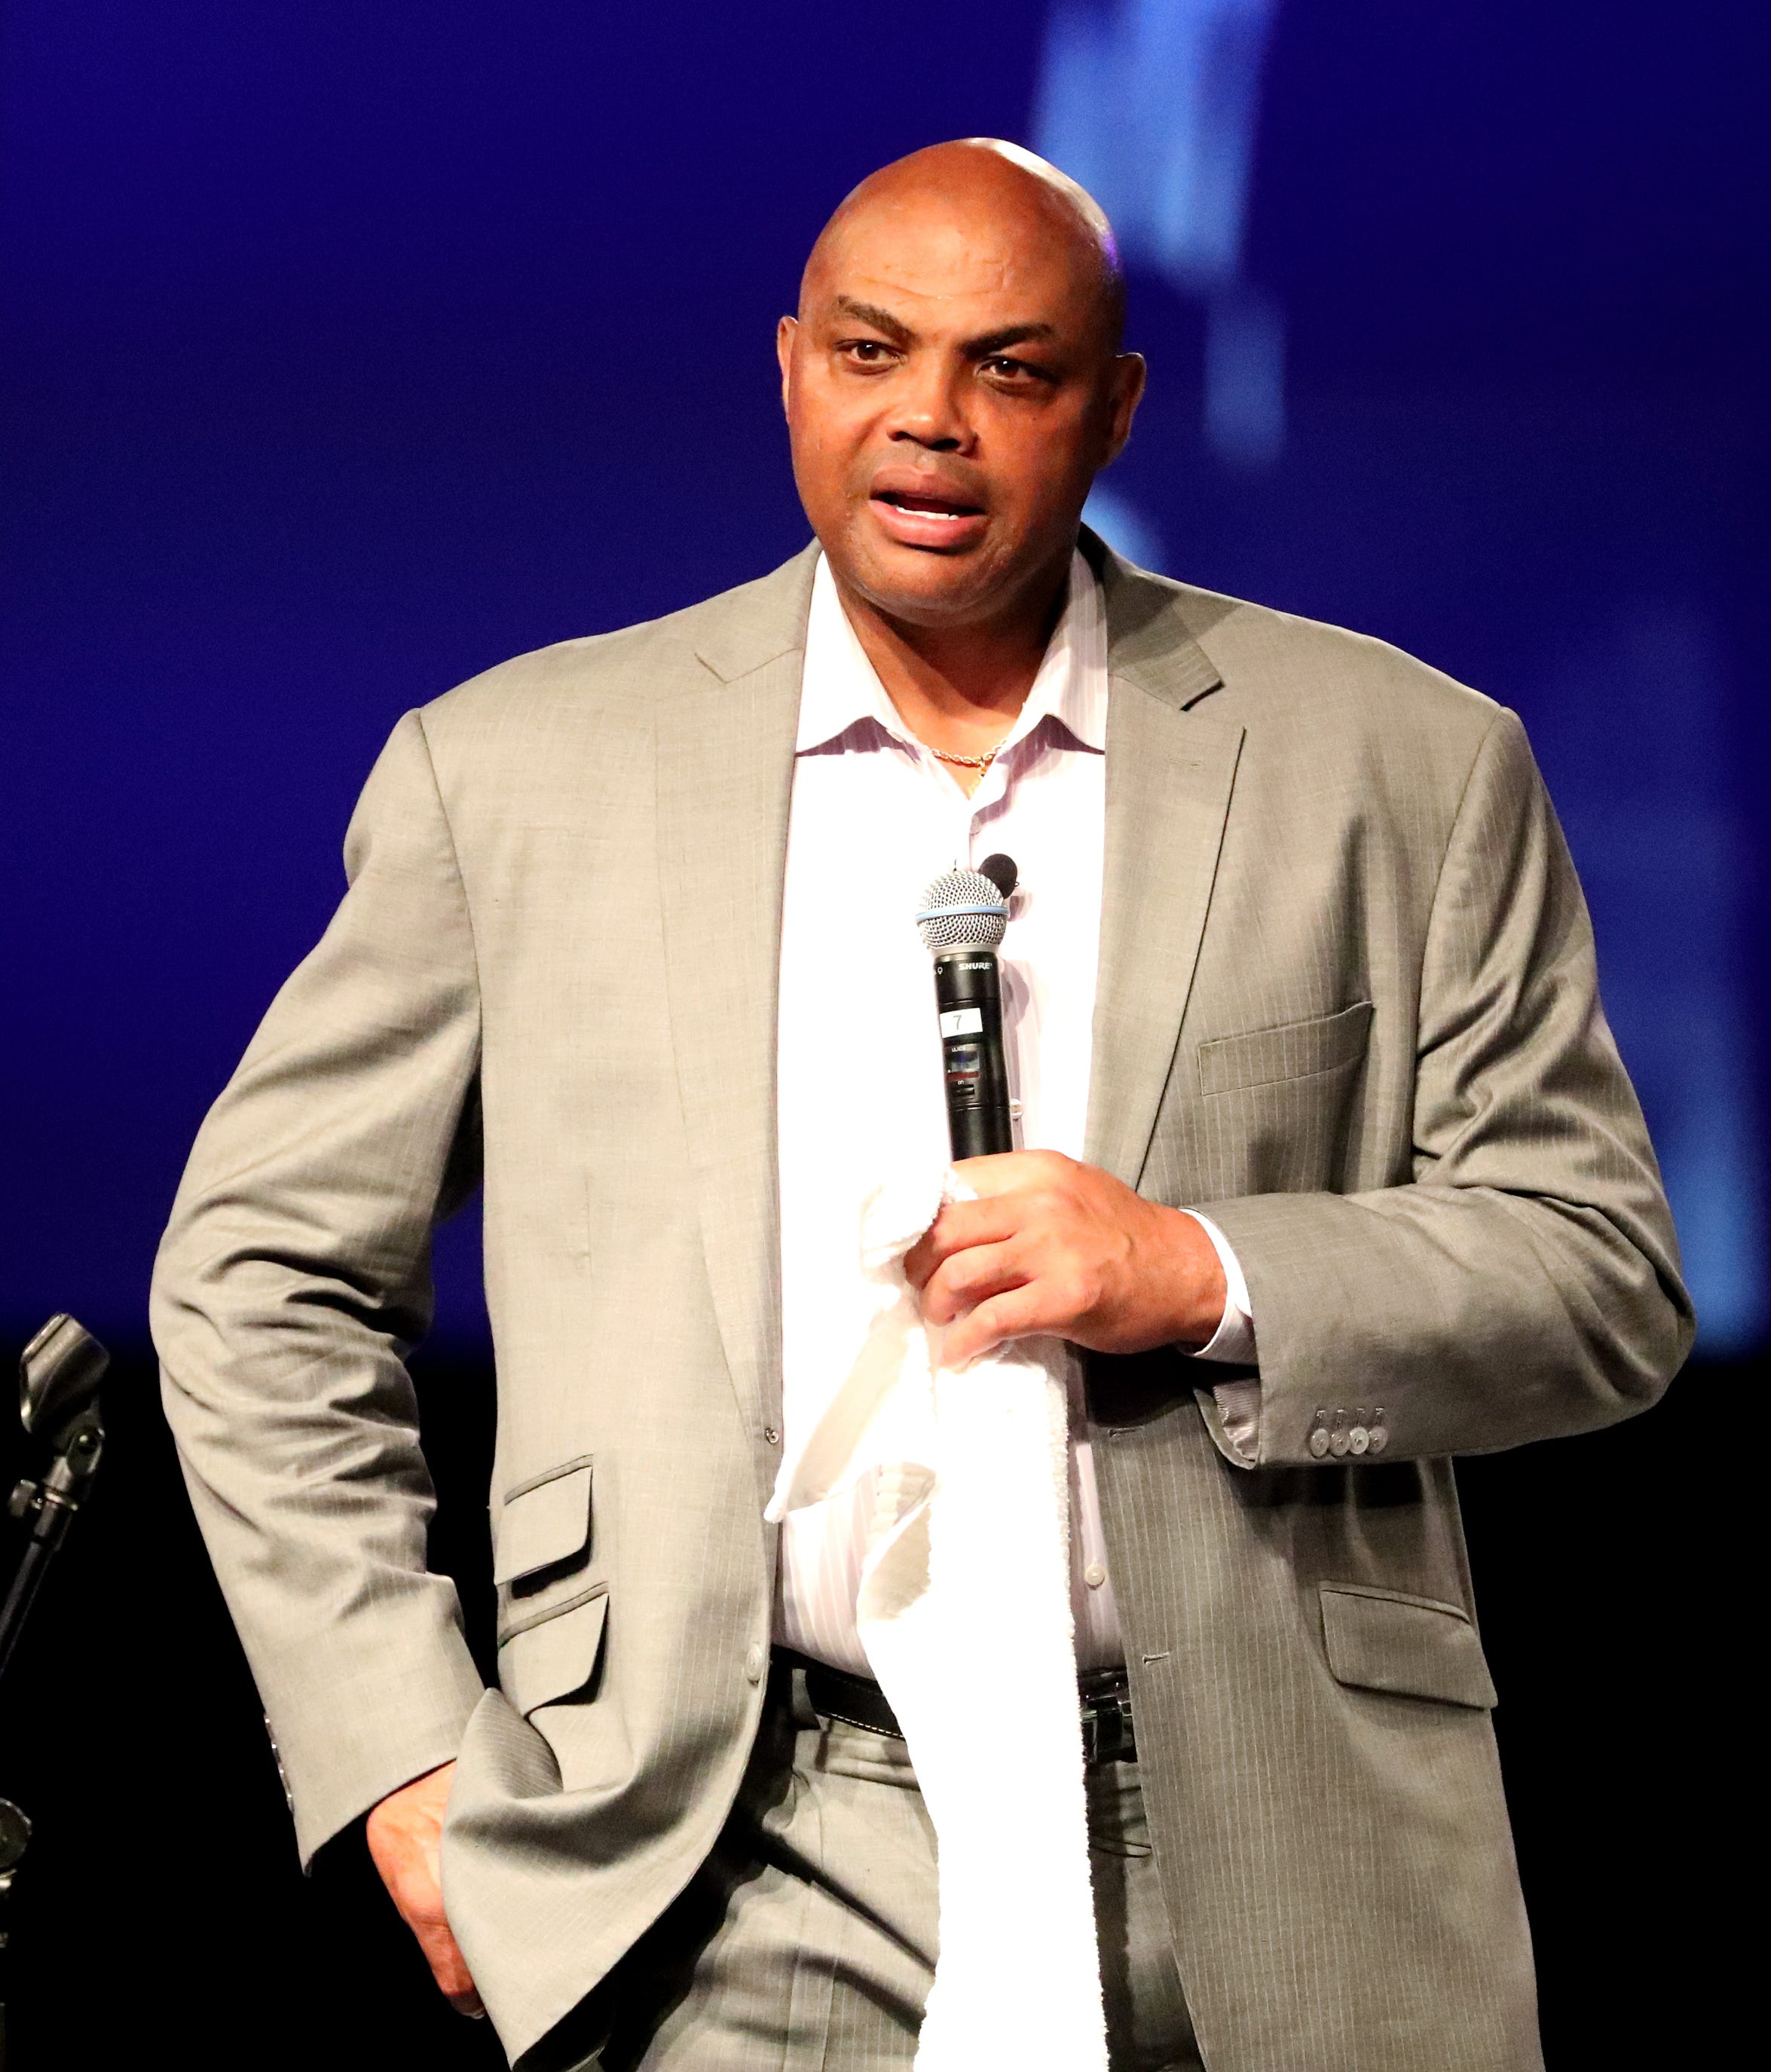 Gero Golden Boys video: charles barkley talks about auburn football losing to tennessee